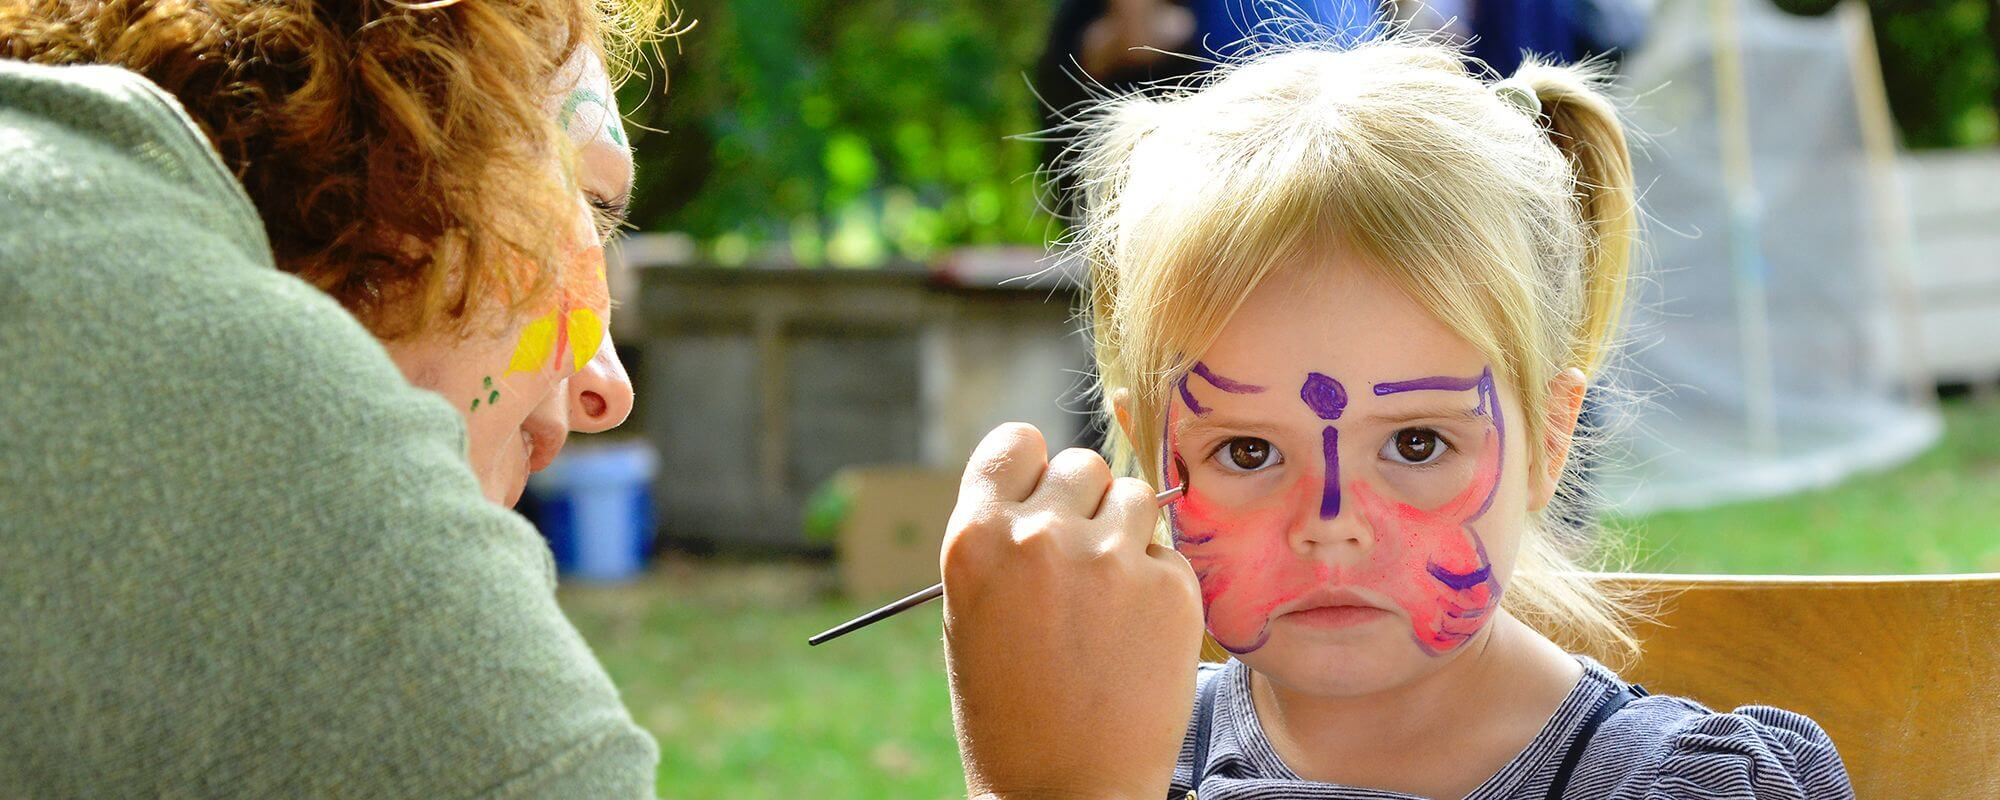 HB Hohepa Fair 2015 Face Painting